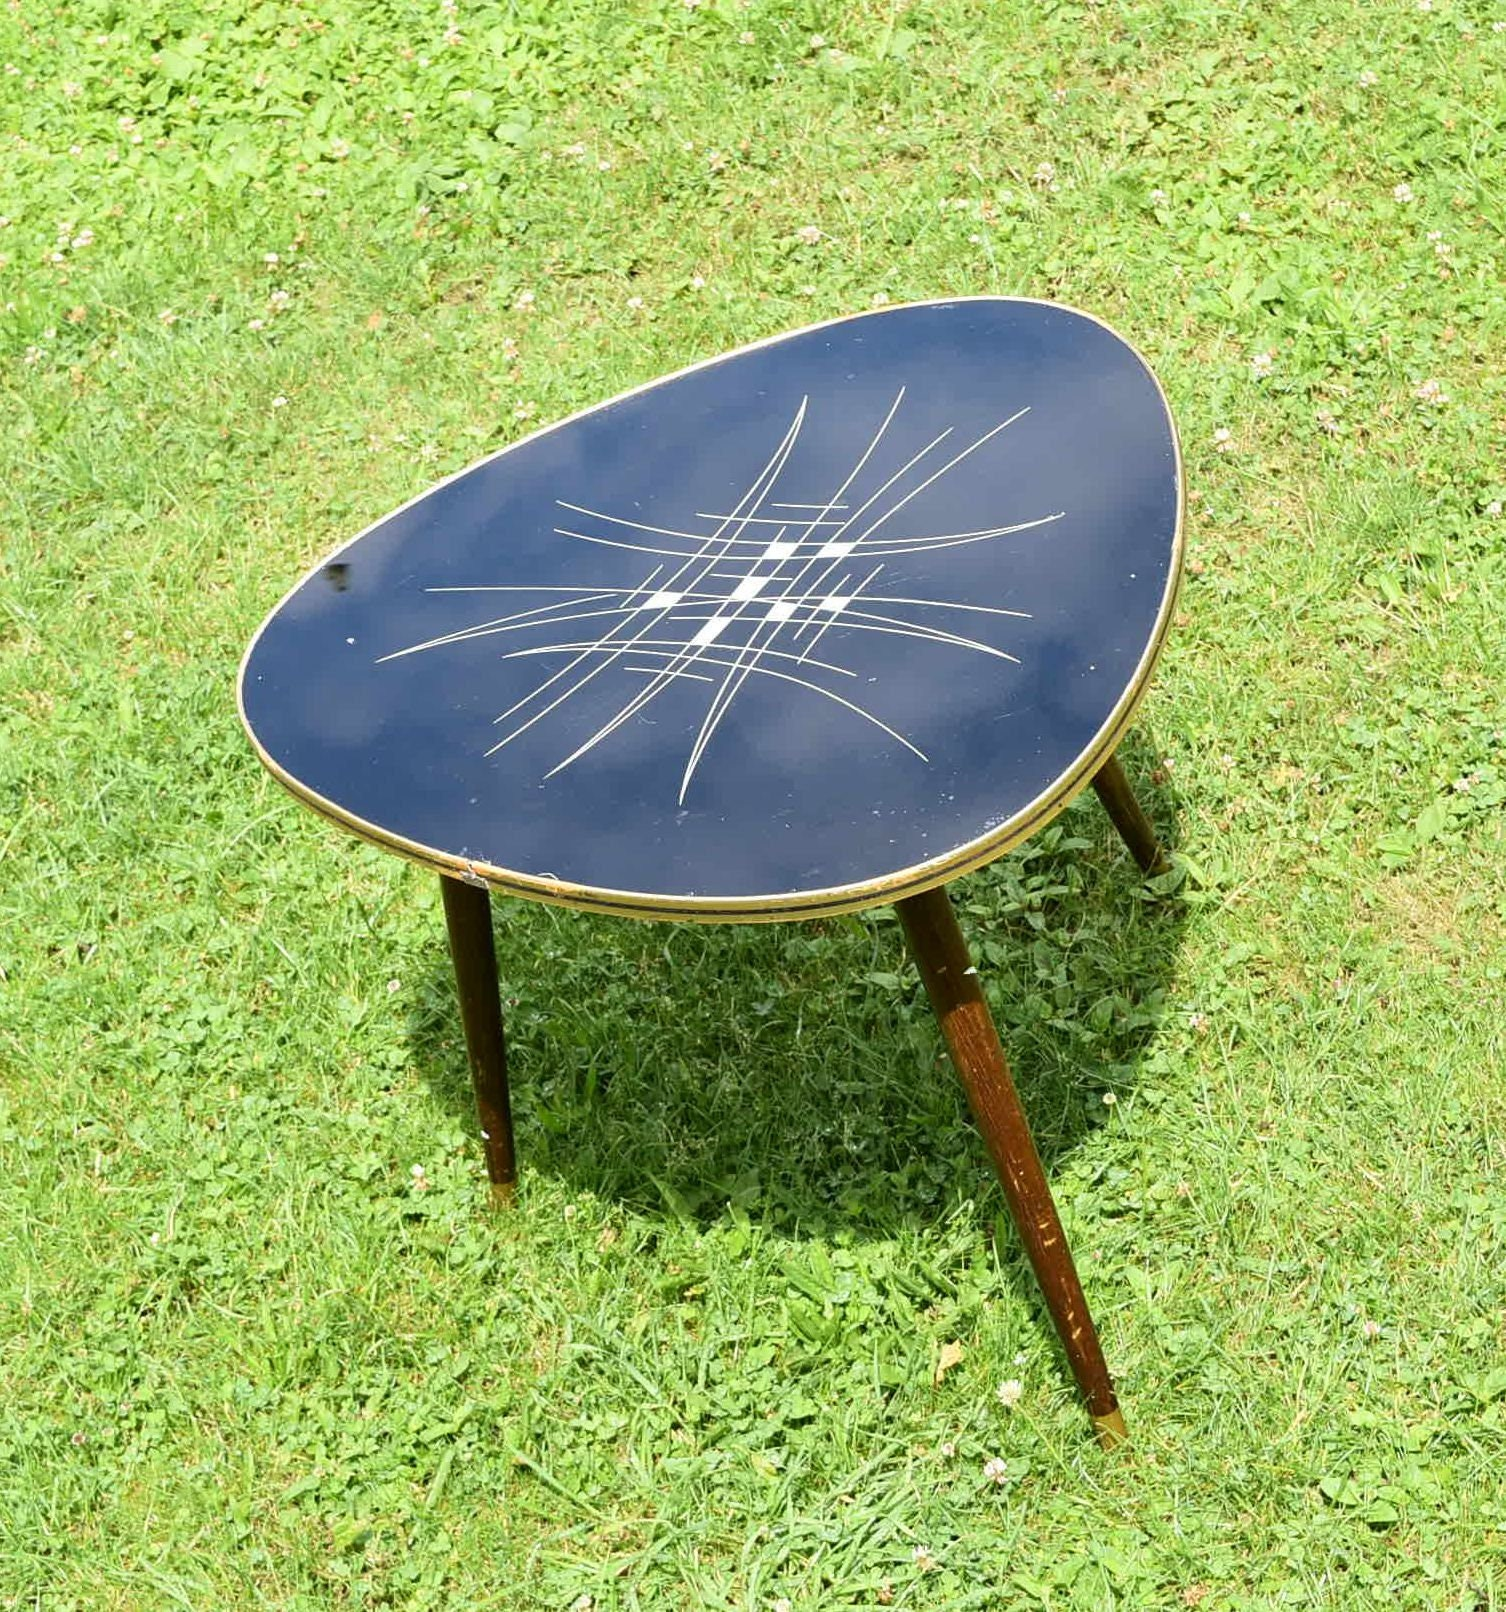 Glass Coffee Tables New Zealand: Kidney Table 50s Coffee Table Black Glass Plate